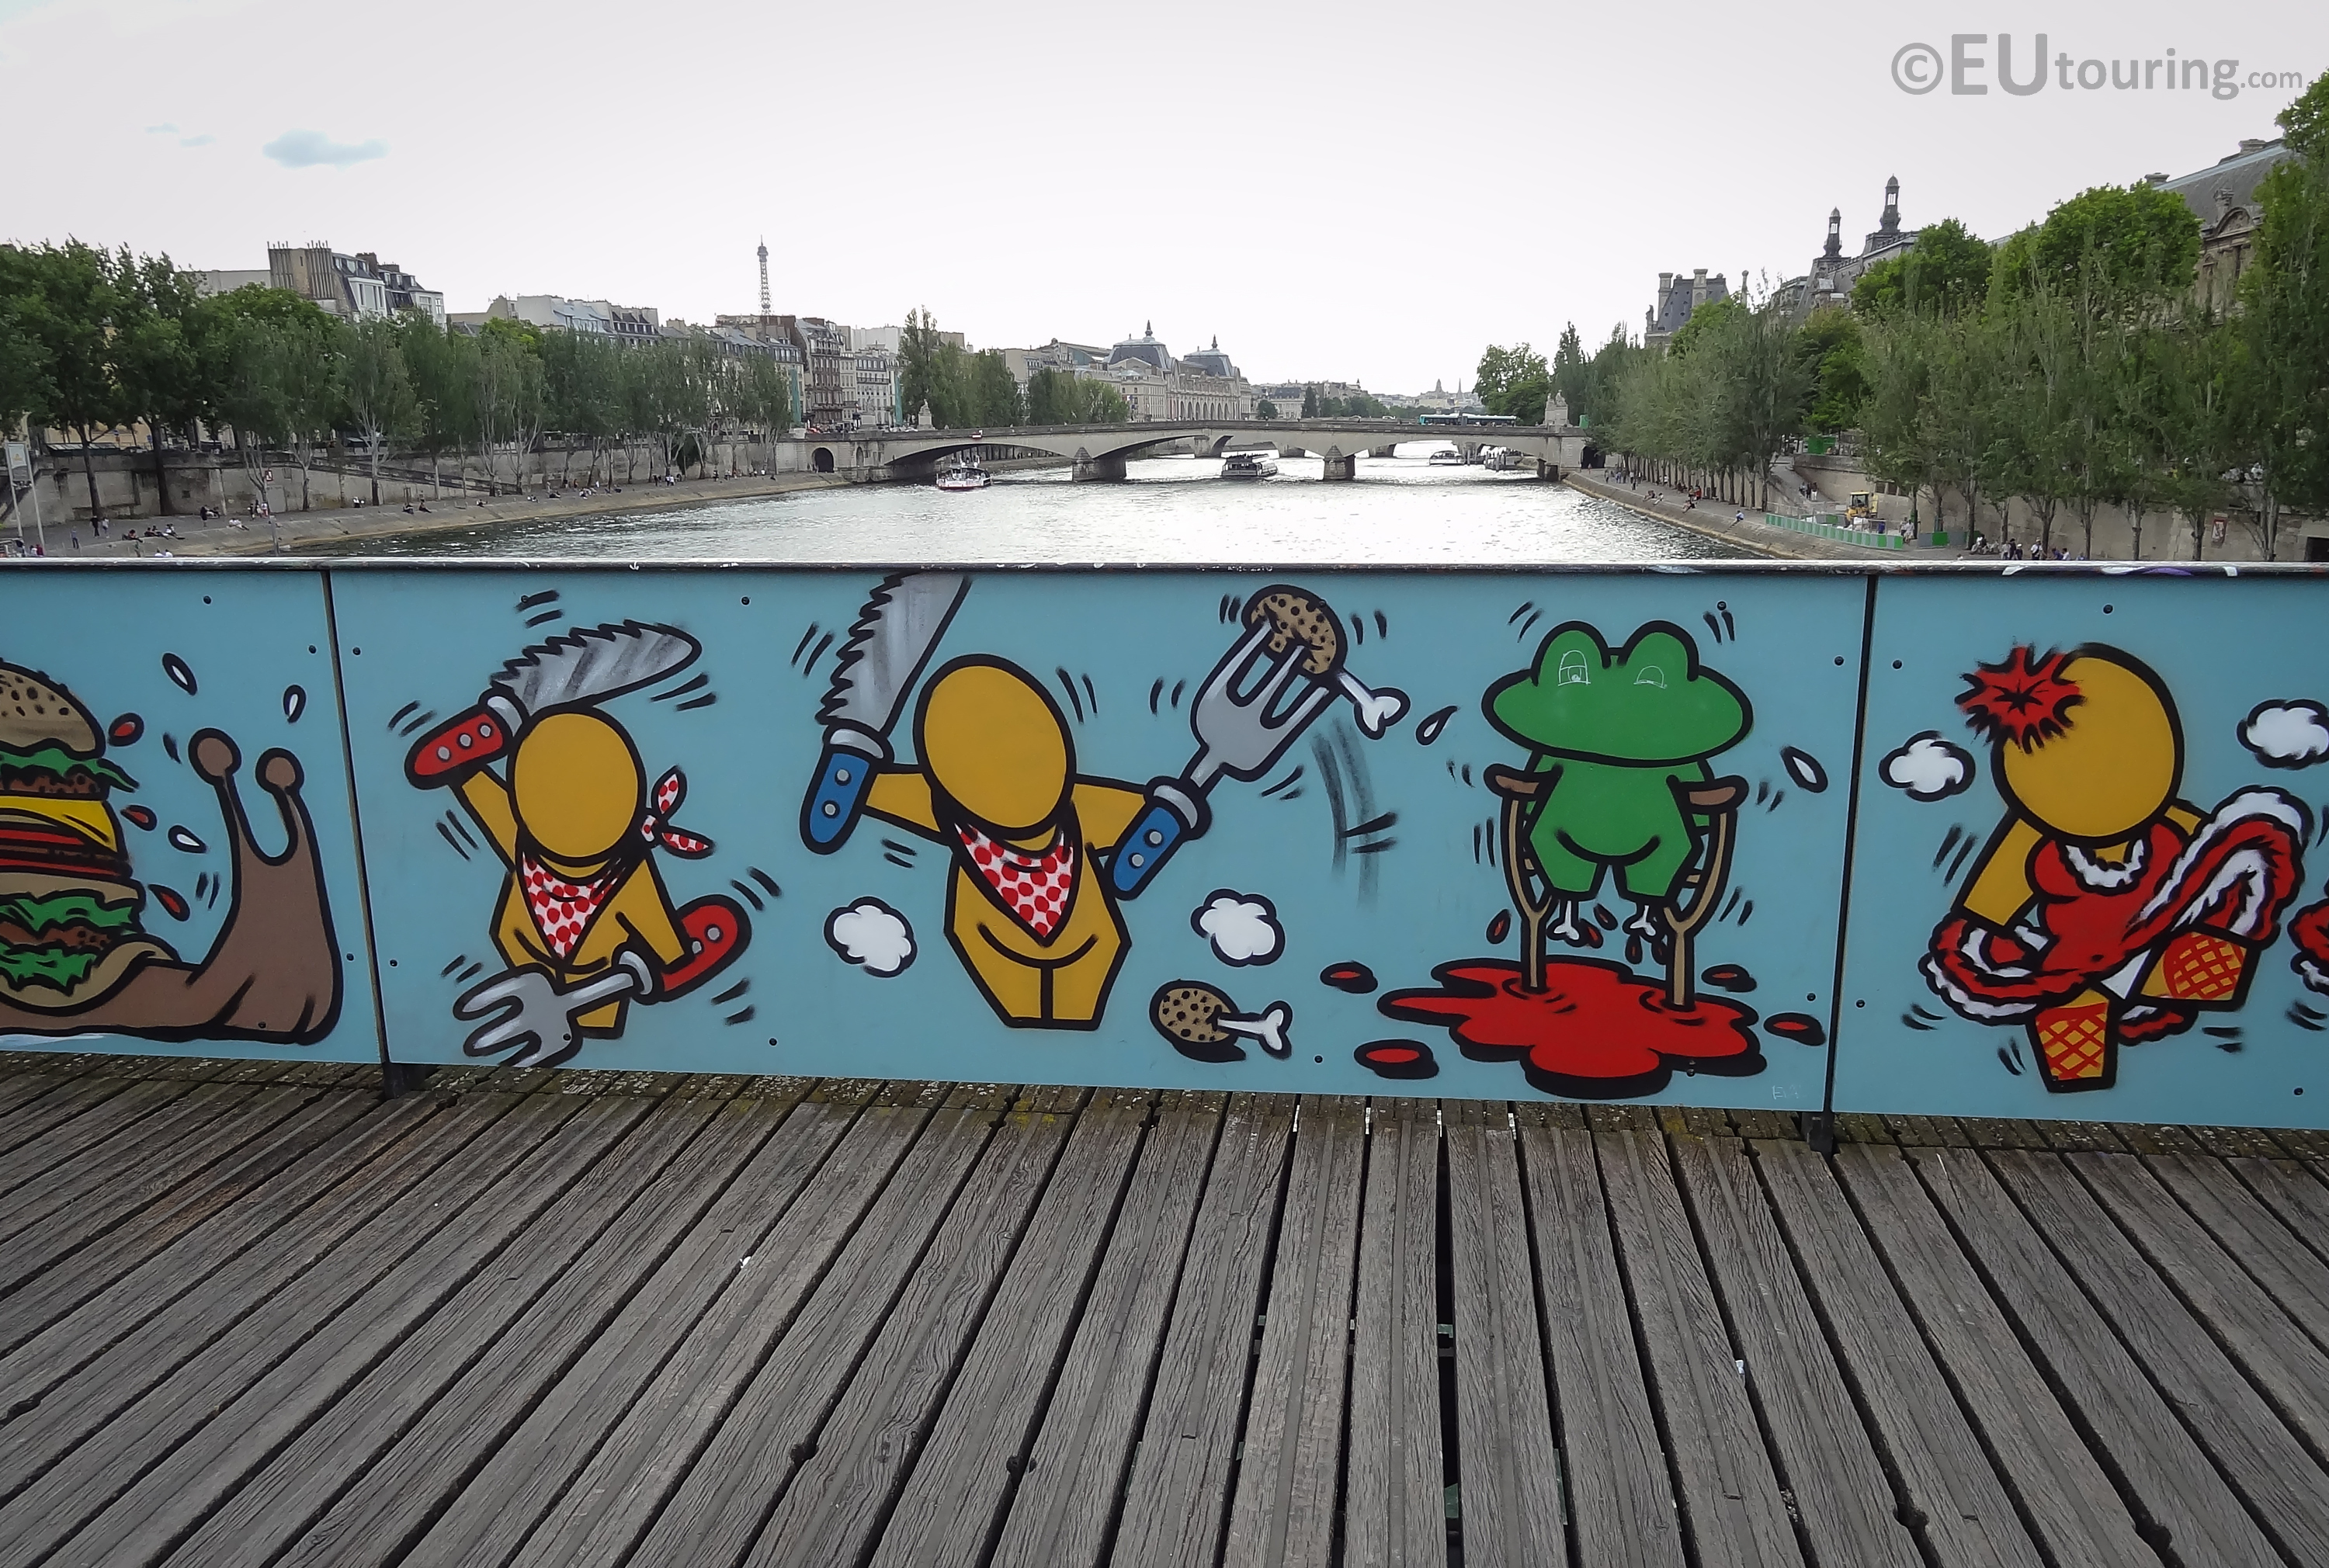 Artistic designs on the bridge